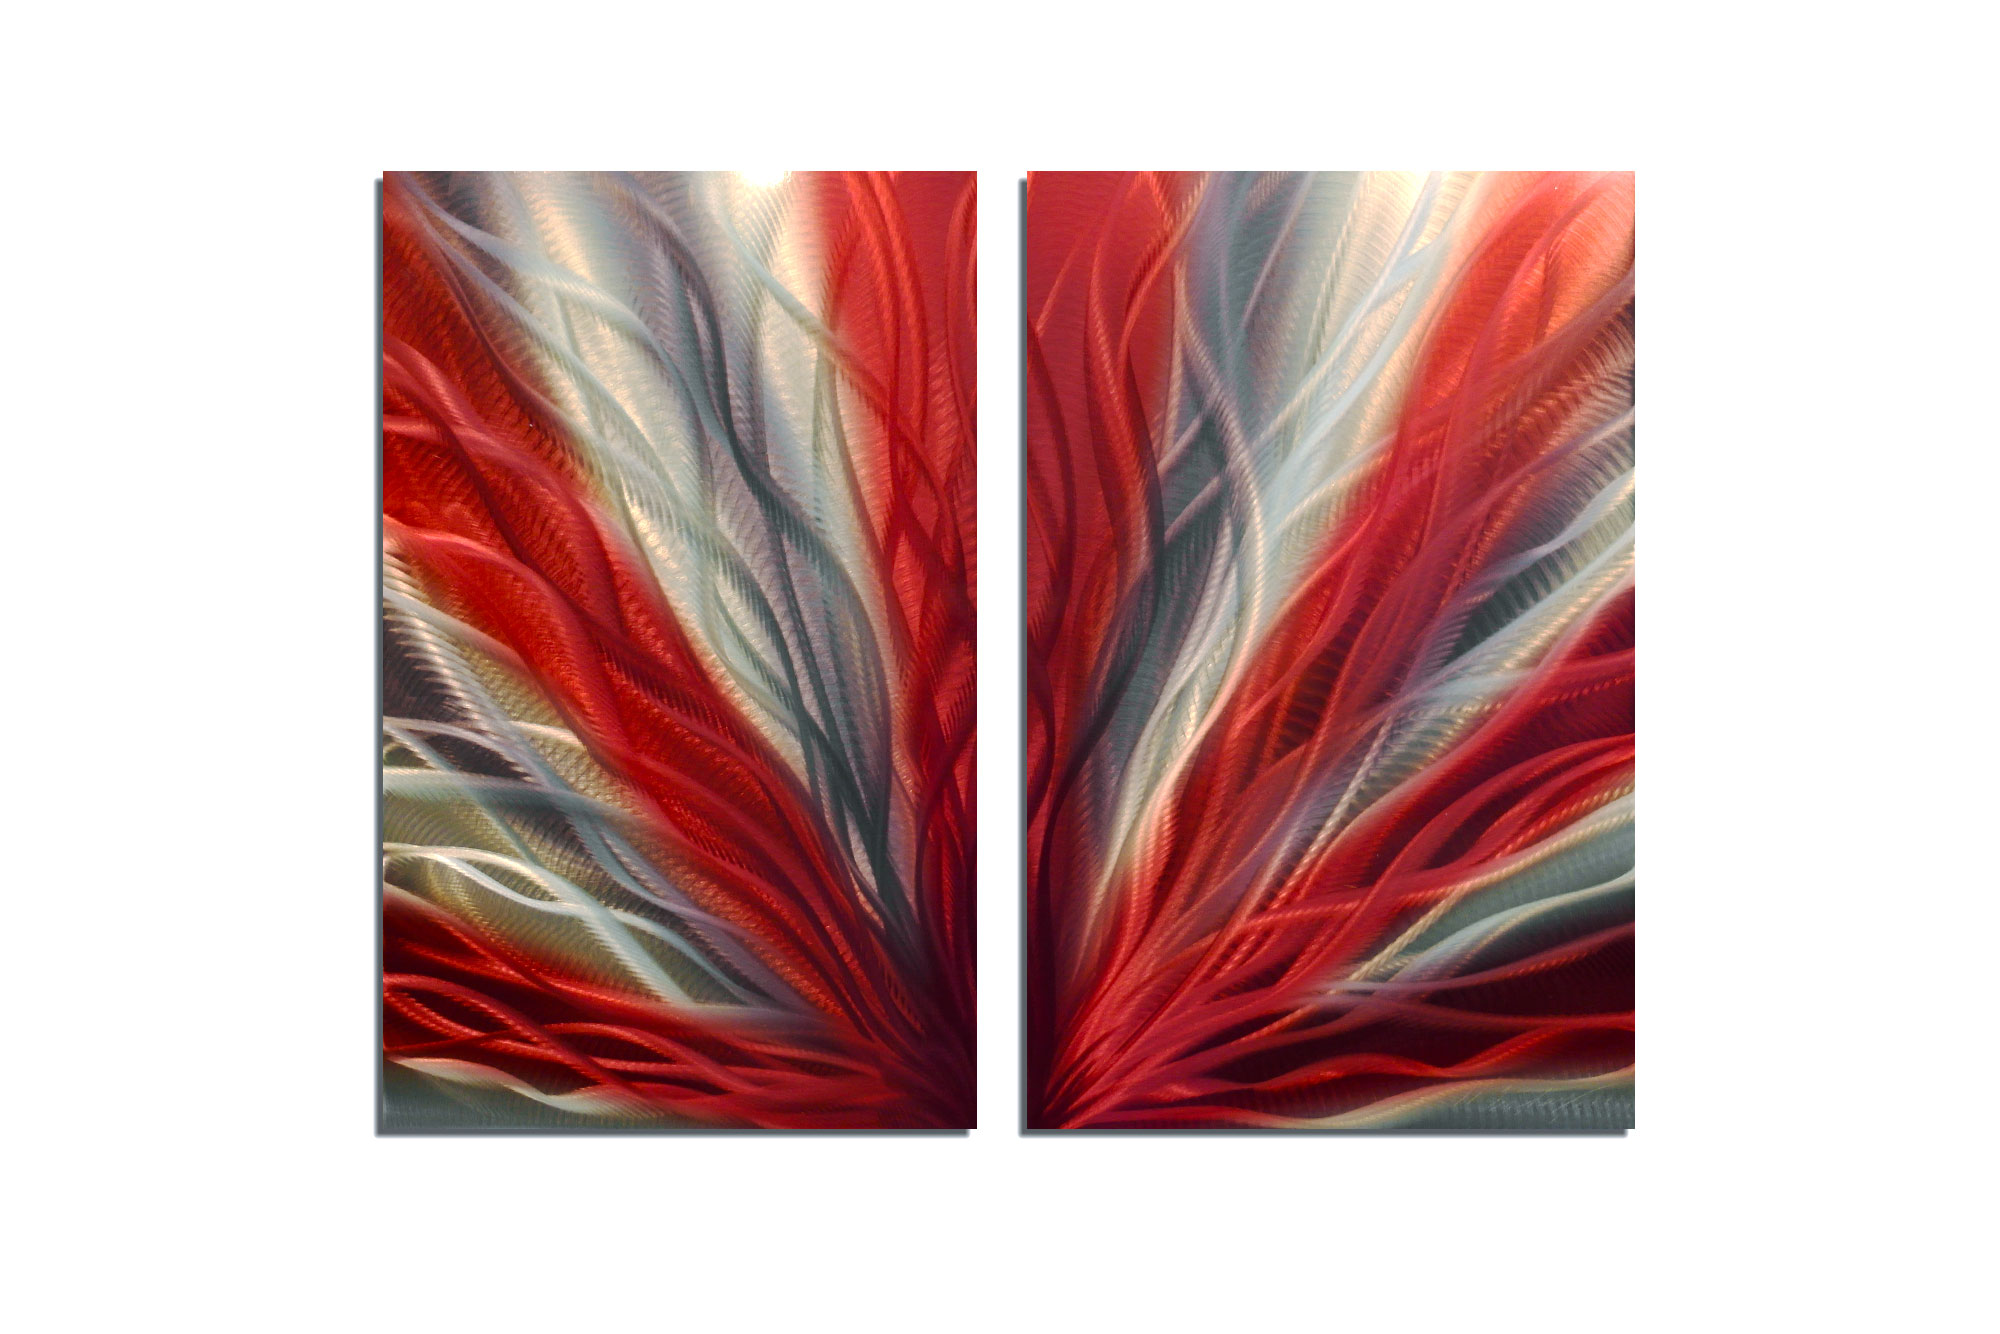 Radiance red 31 metal wall art abstract sculpture modern for Red metal wall art